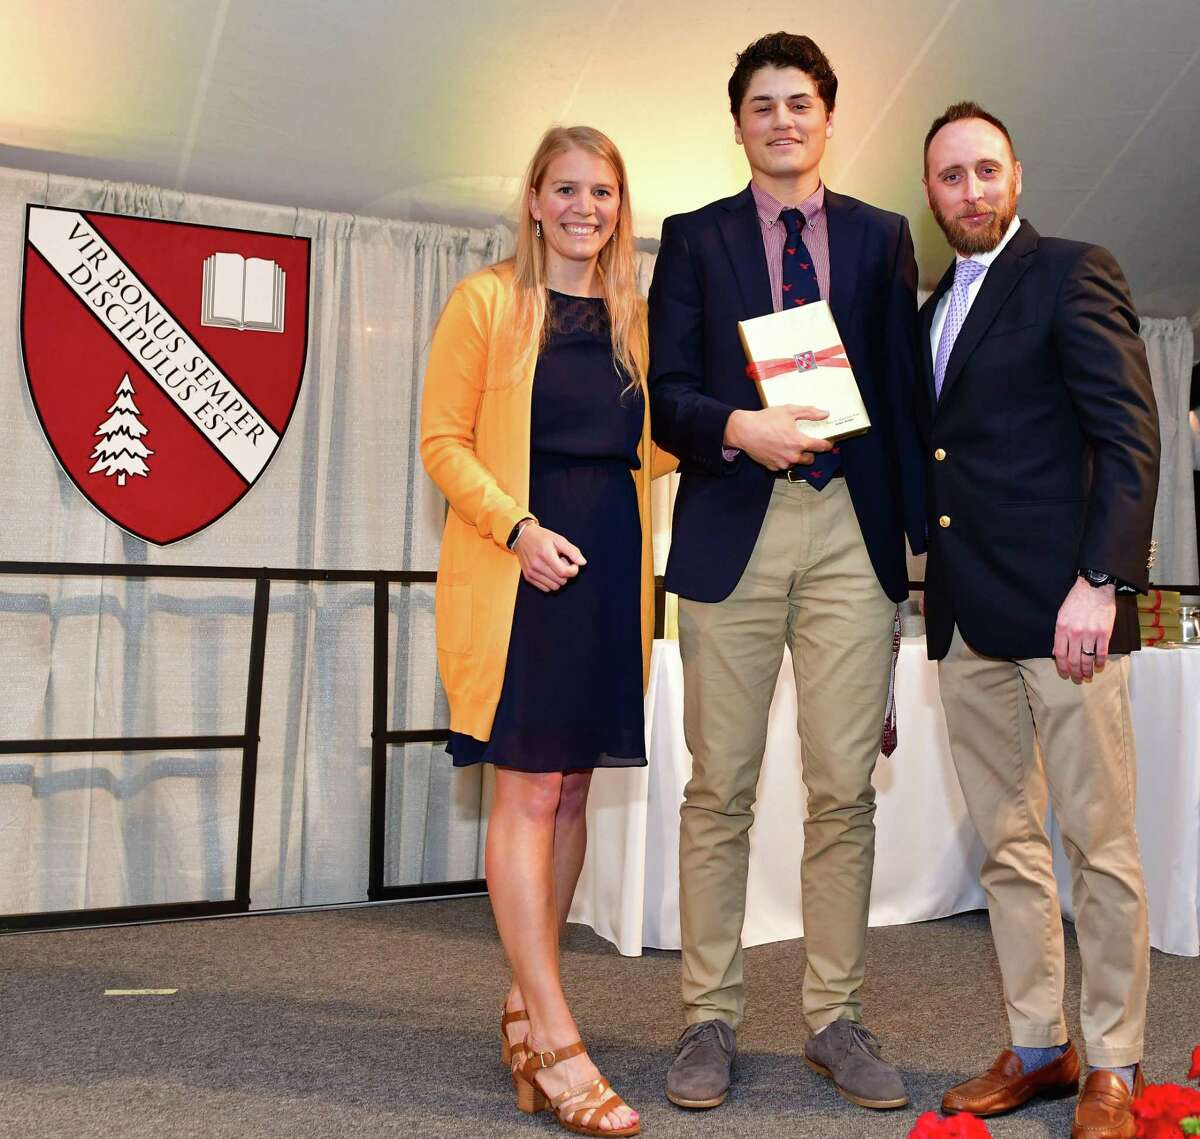 Graduate Julian Aviles of Kent accepts the Percy B. Wightman Prize from Rebeca Leclerc, director of outdoor programs, and Ryan Cotter, co-chair of The Gunnery LEADS Program.